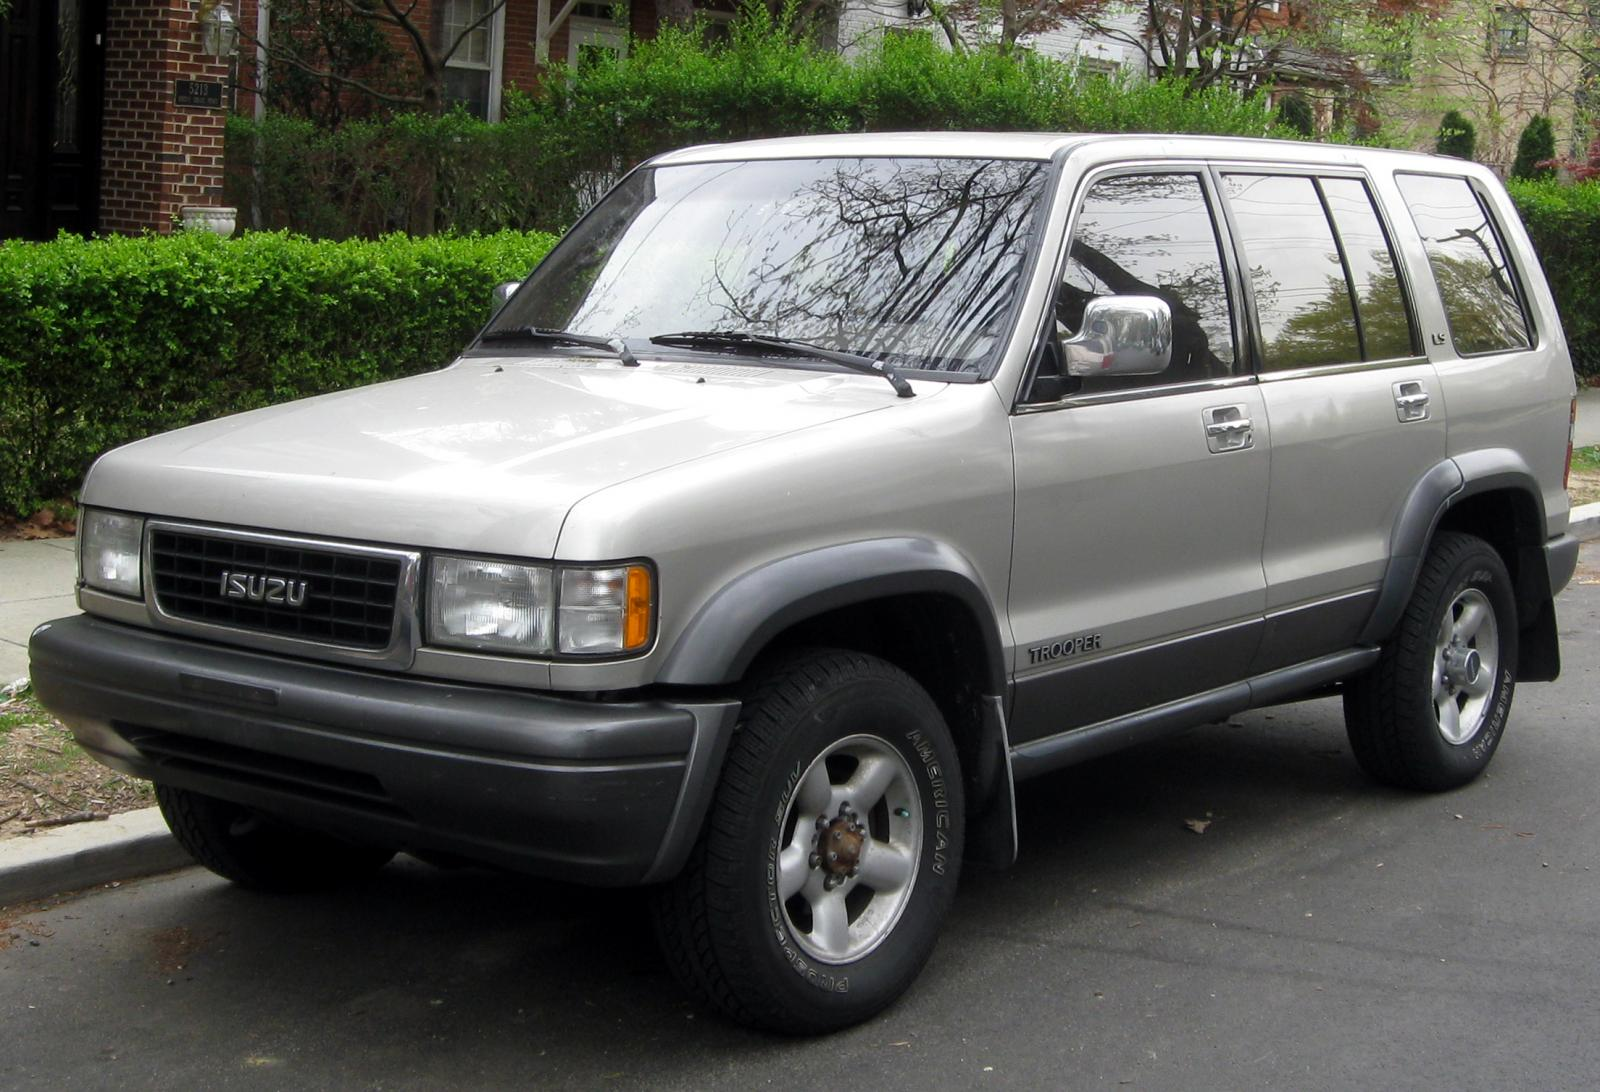 1996 Isuzu Trooper - Information and photos - ZombieDrive on isuzu npr relay diagram, isuzu npr battery connection diagram, isuzu npr fuse box diagram, condenser fan motor wiring diagram, isuzu npr truck parts diagram, 7.3l glow plug wiring diagram, 1995 isuzu starter wiring diagram,